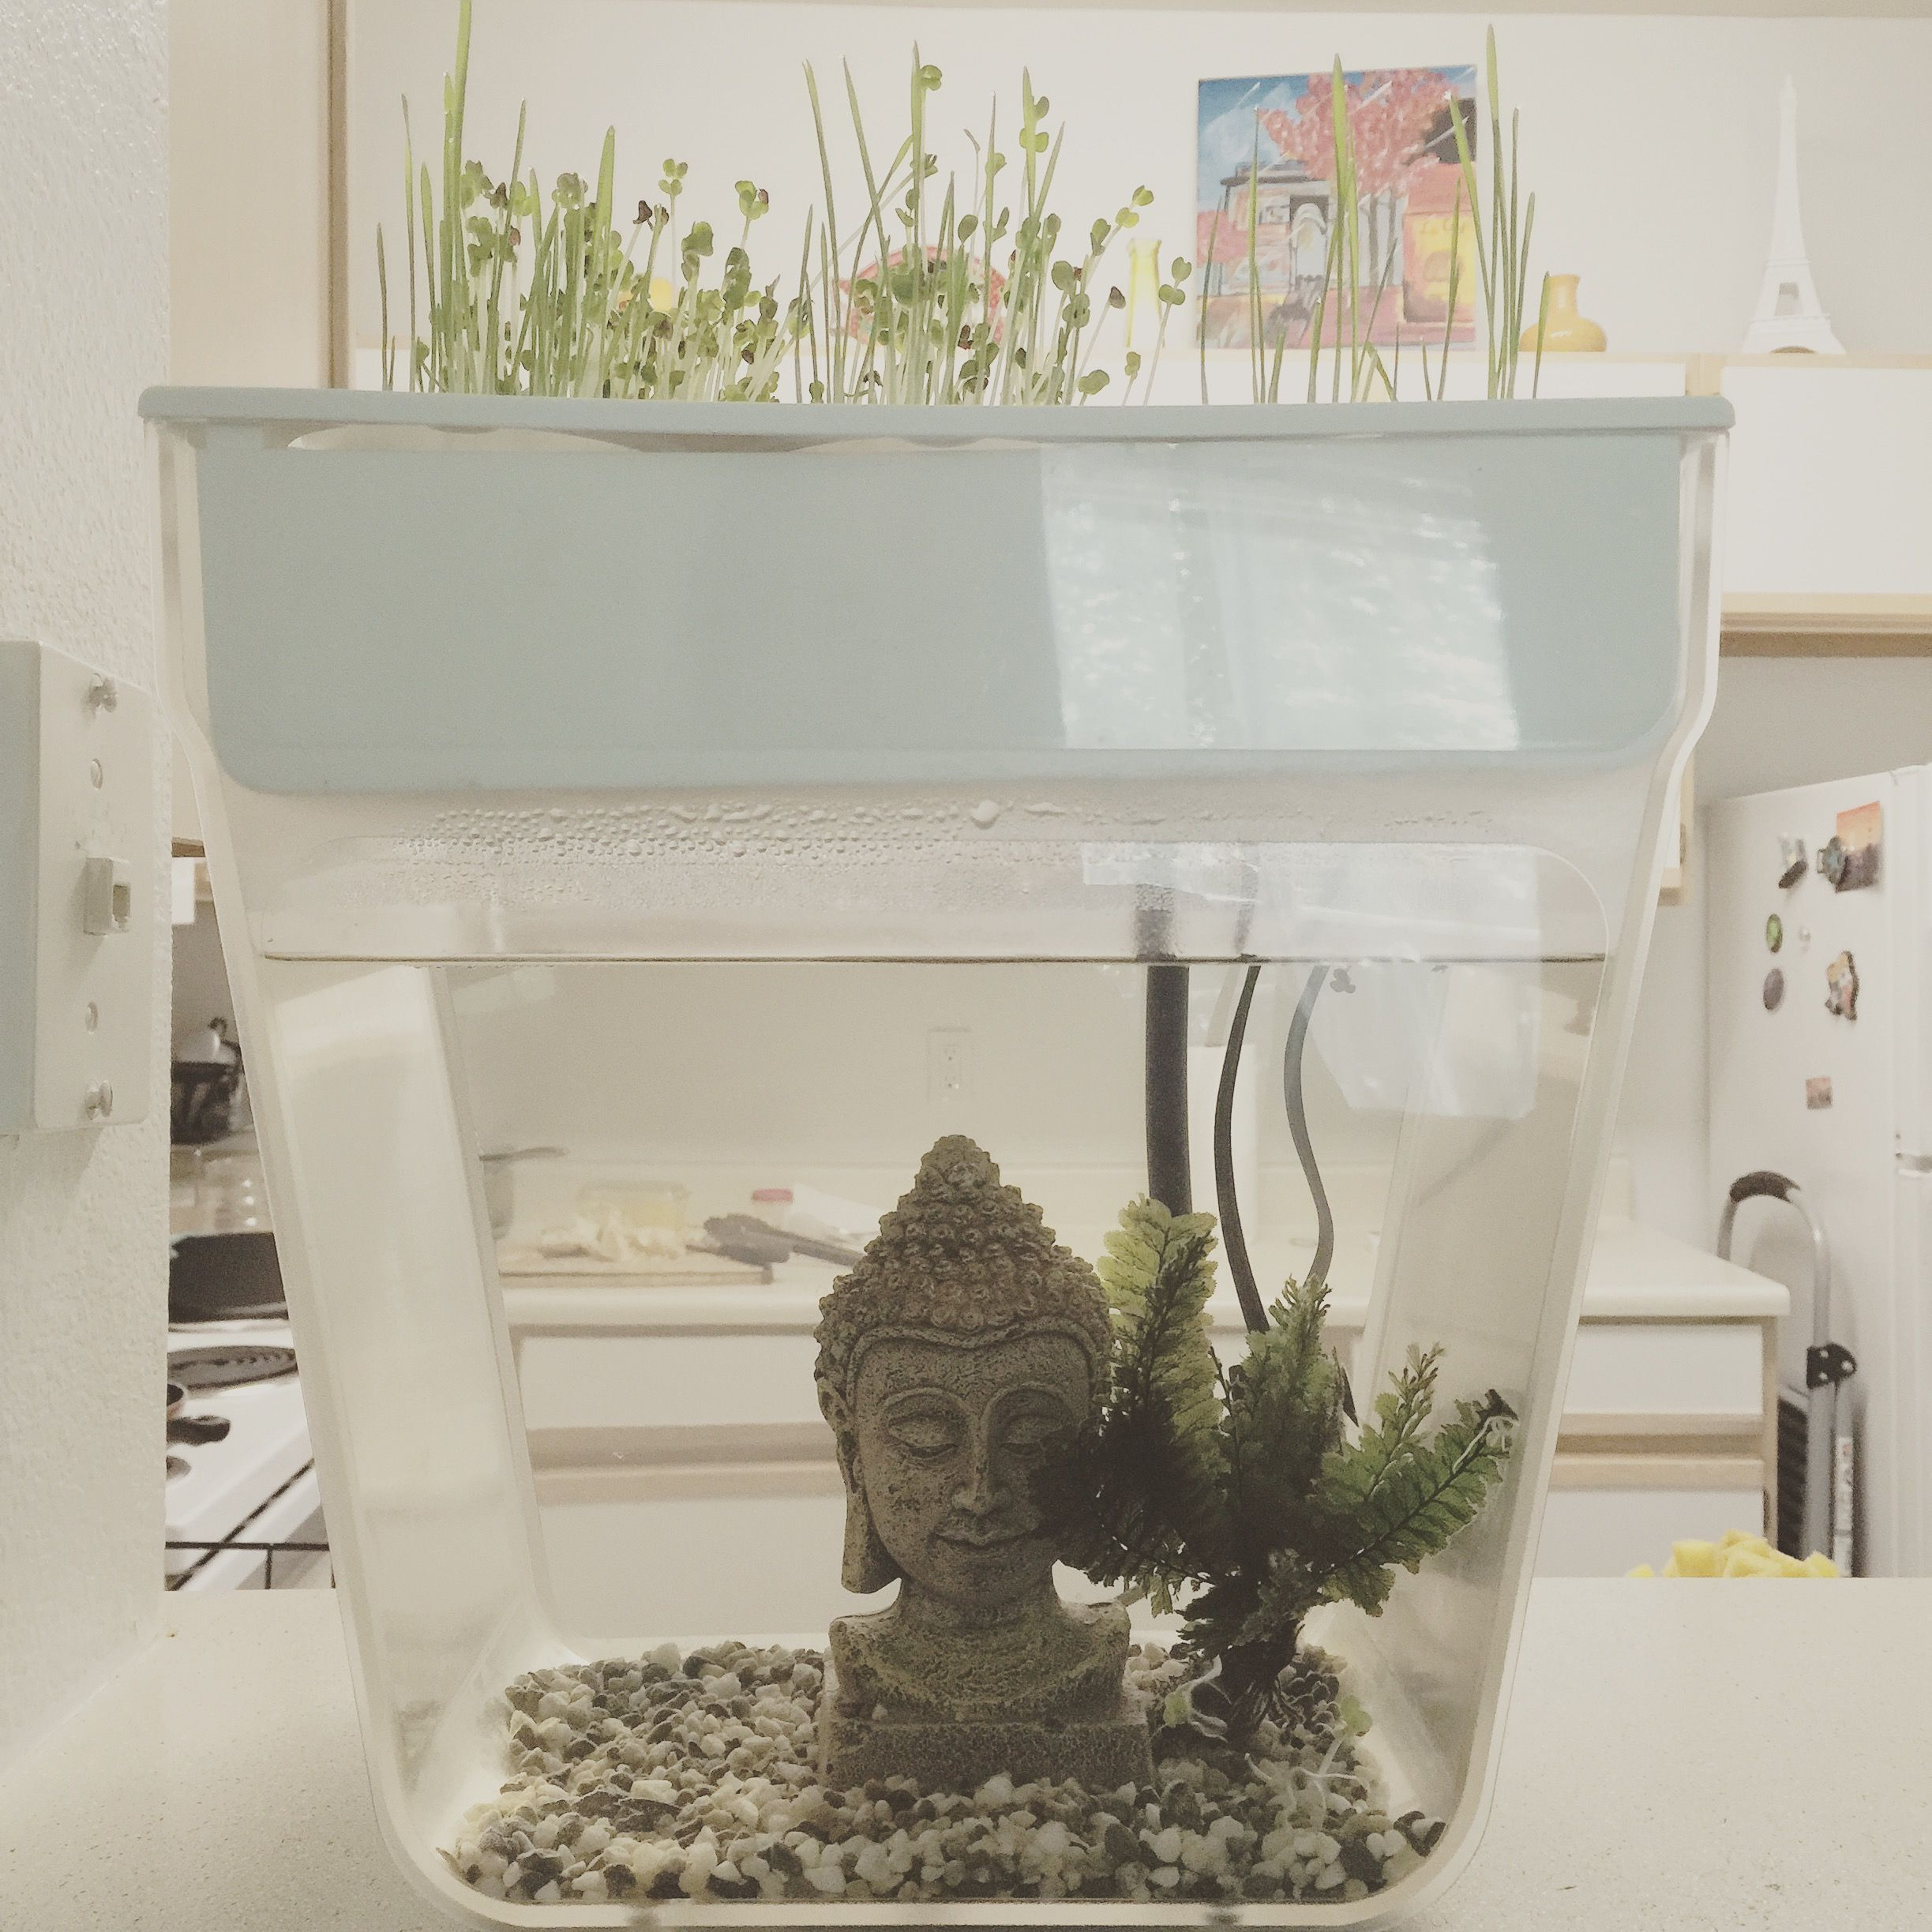 Back To The Roots' Water Garden; an aquaponics tank for